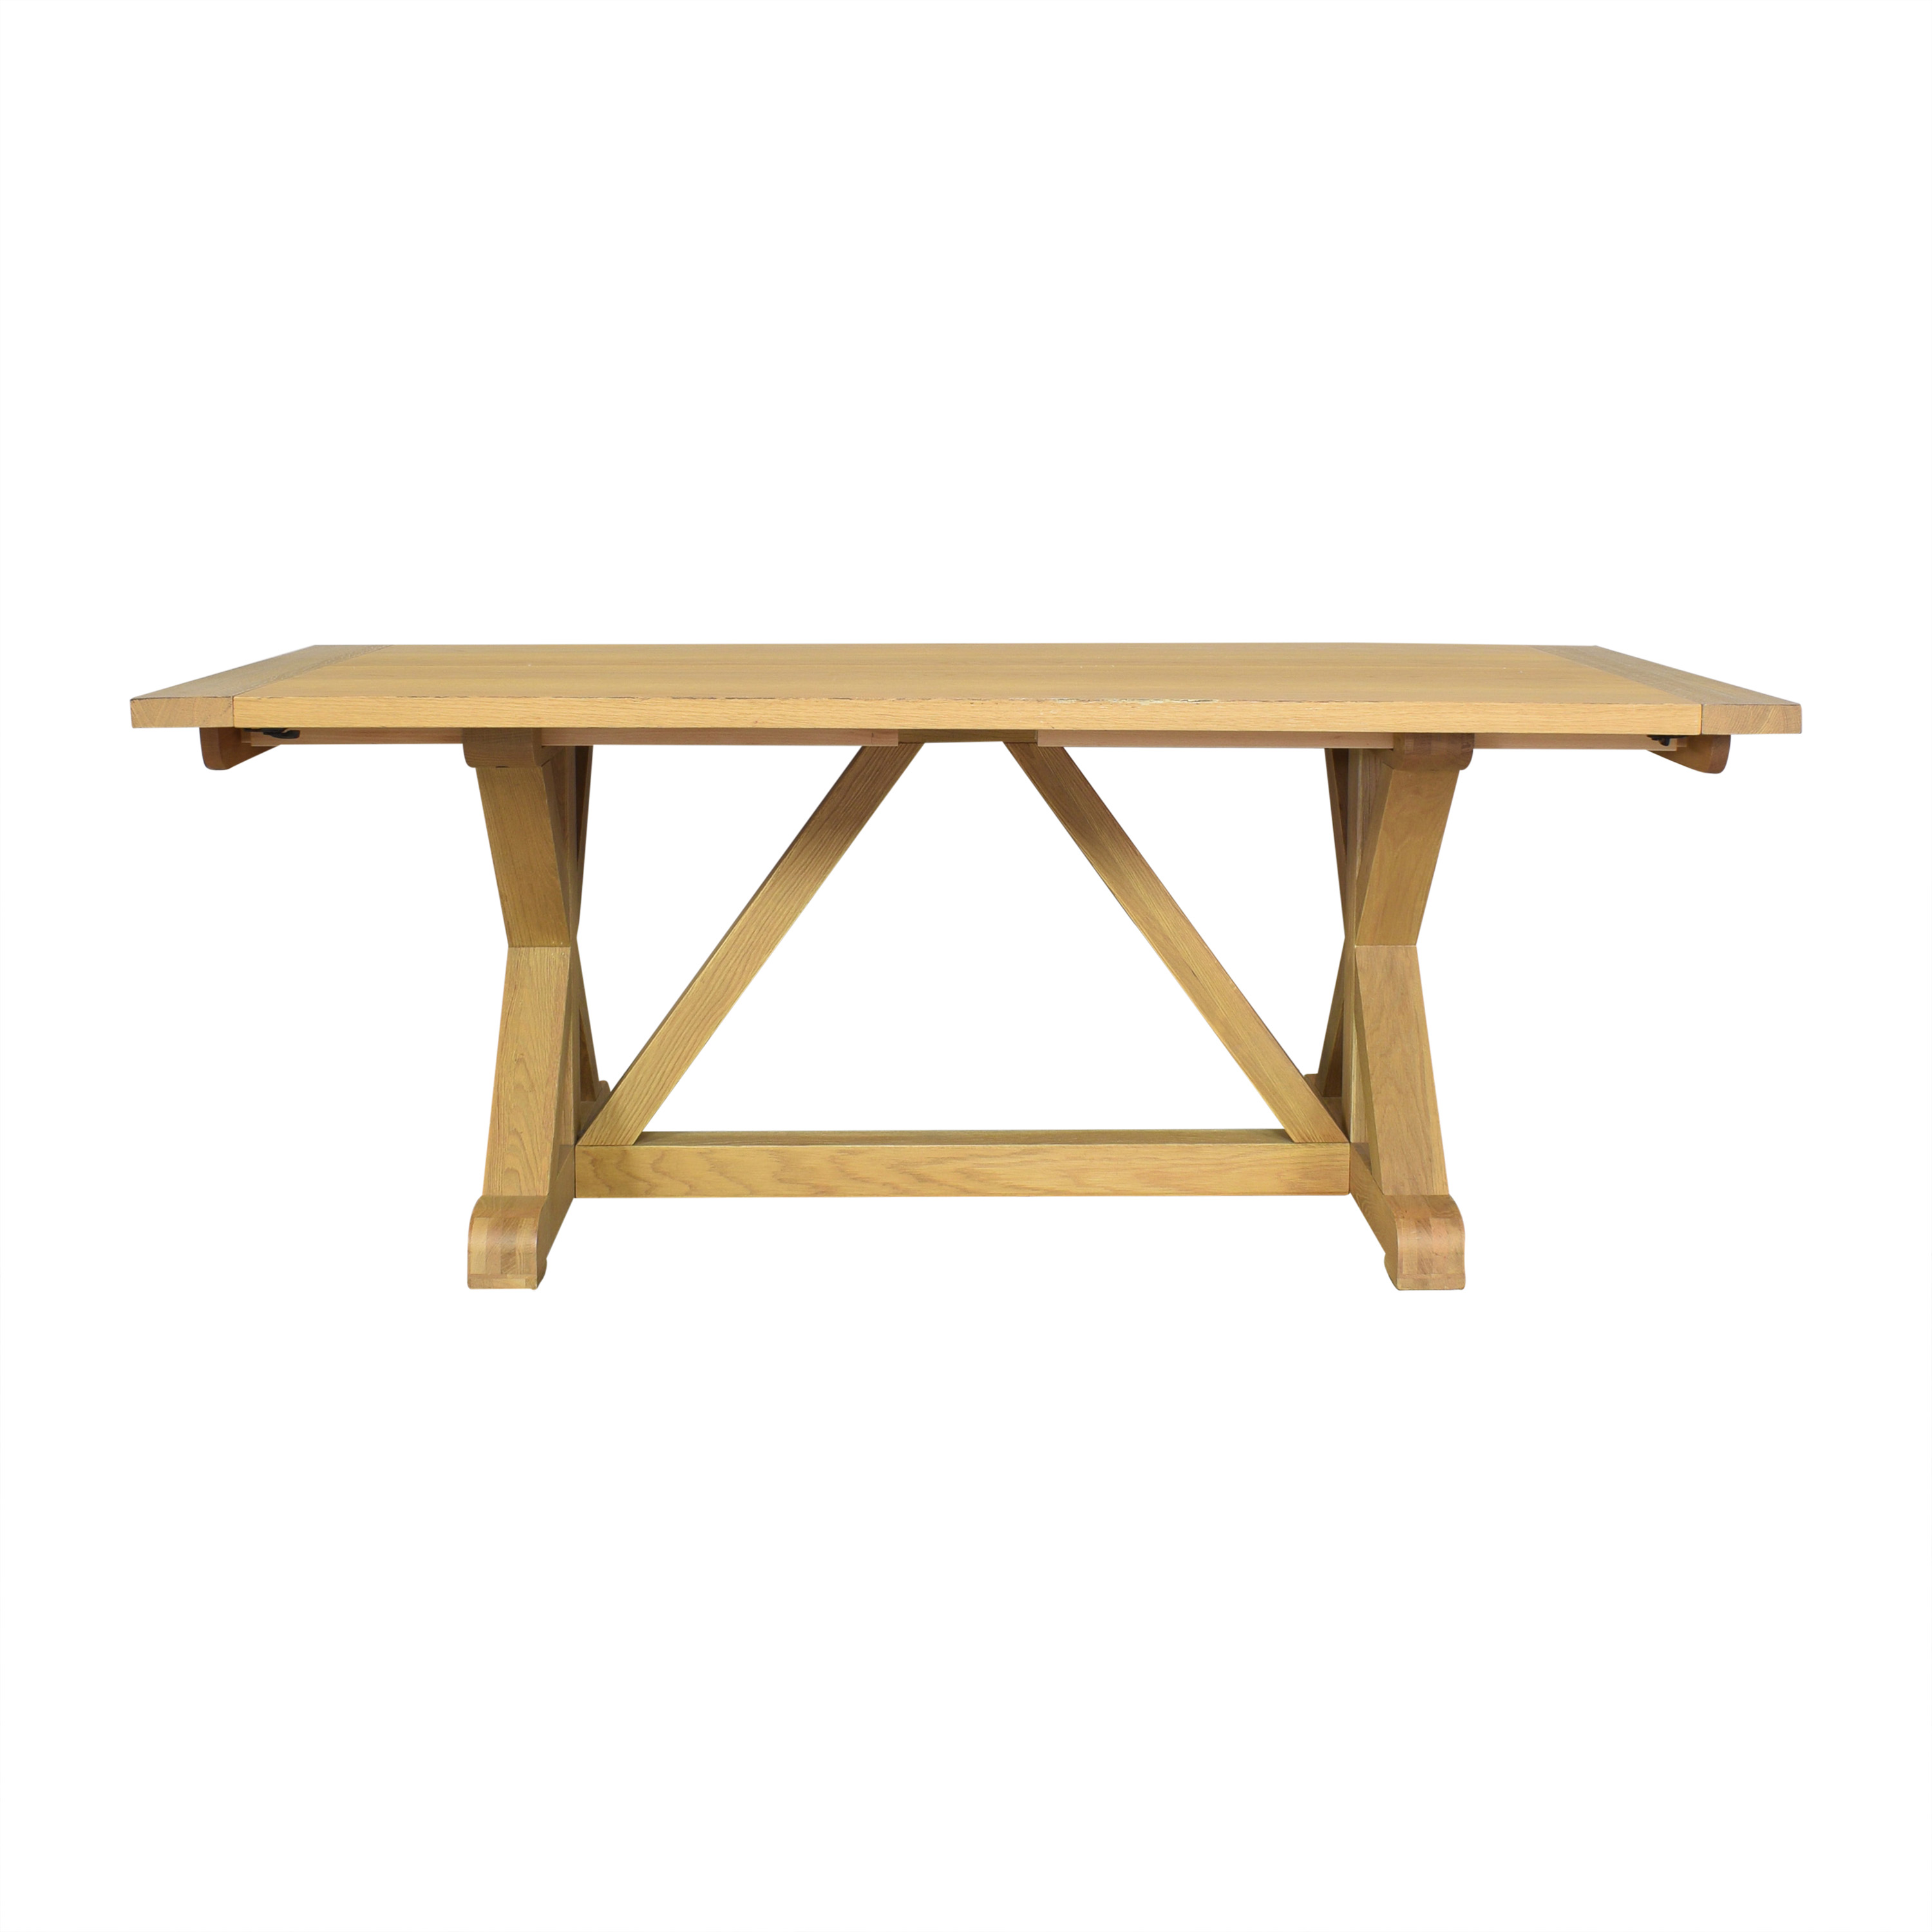 shop Williams-Sonoma Morgan Trestle Dining Table Williams Sonoma Dinner Tables